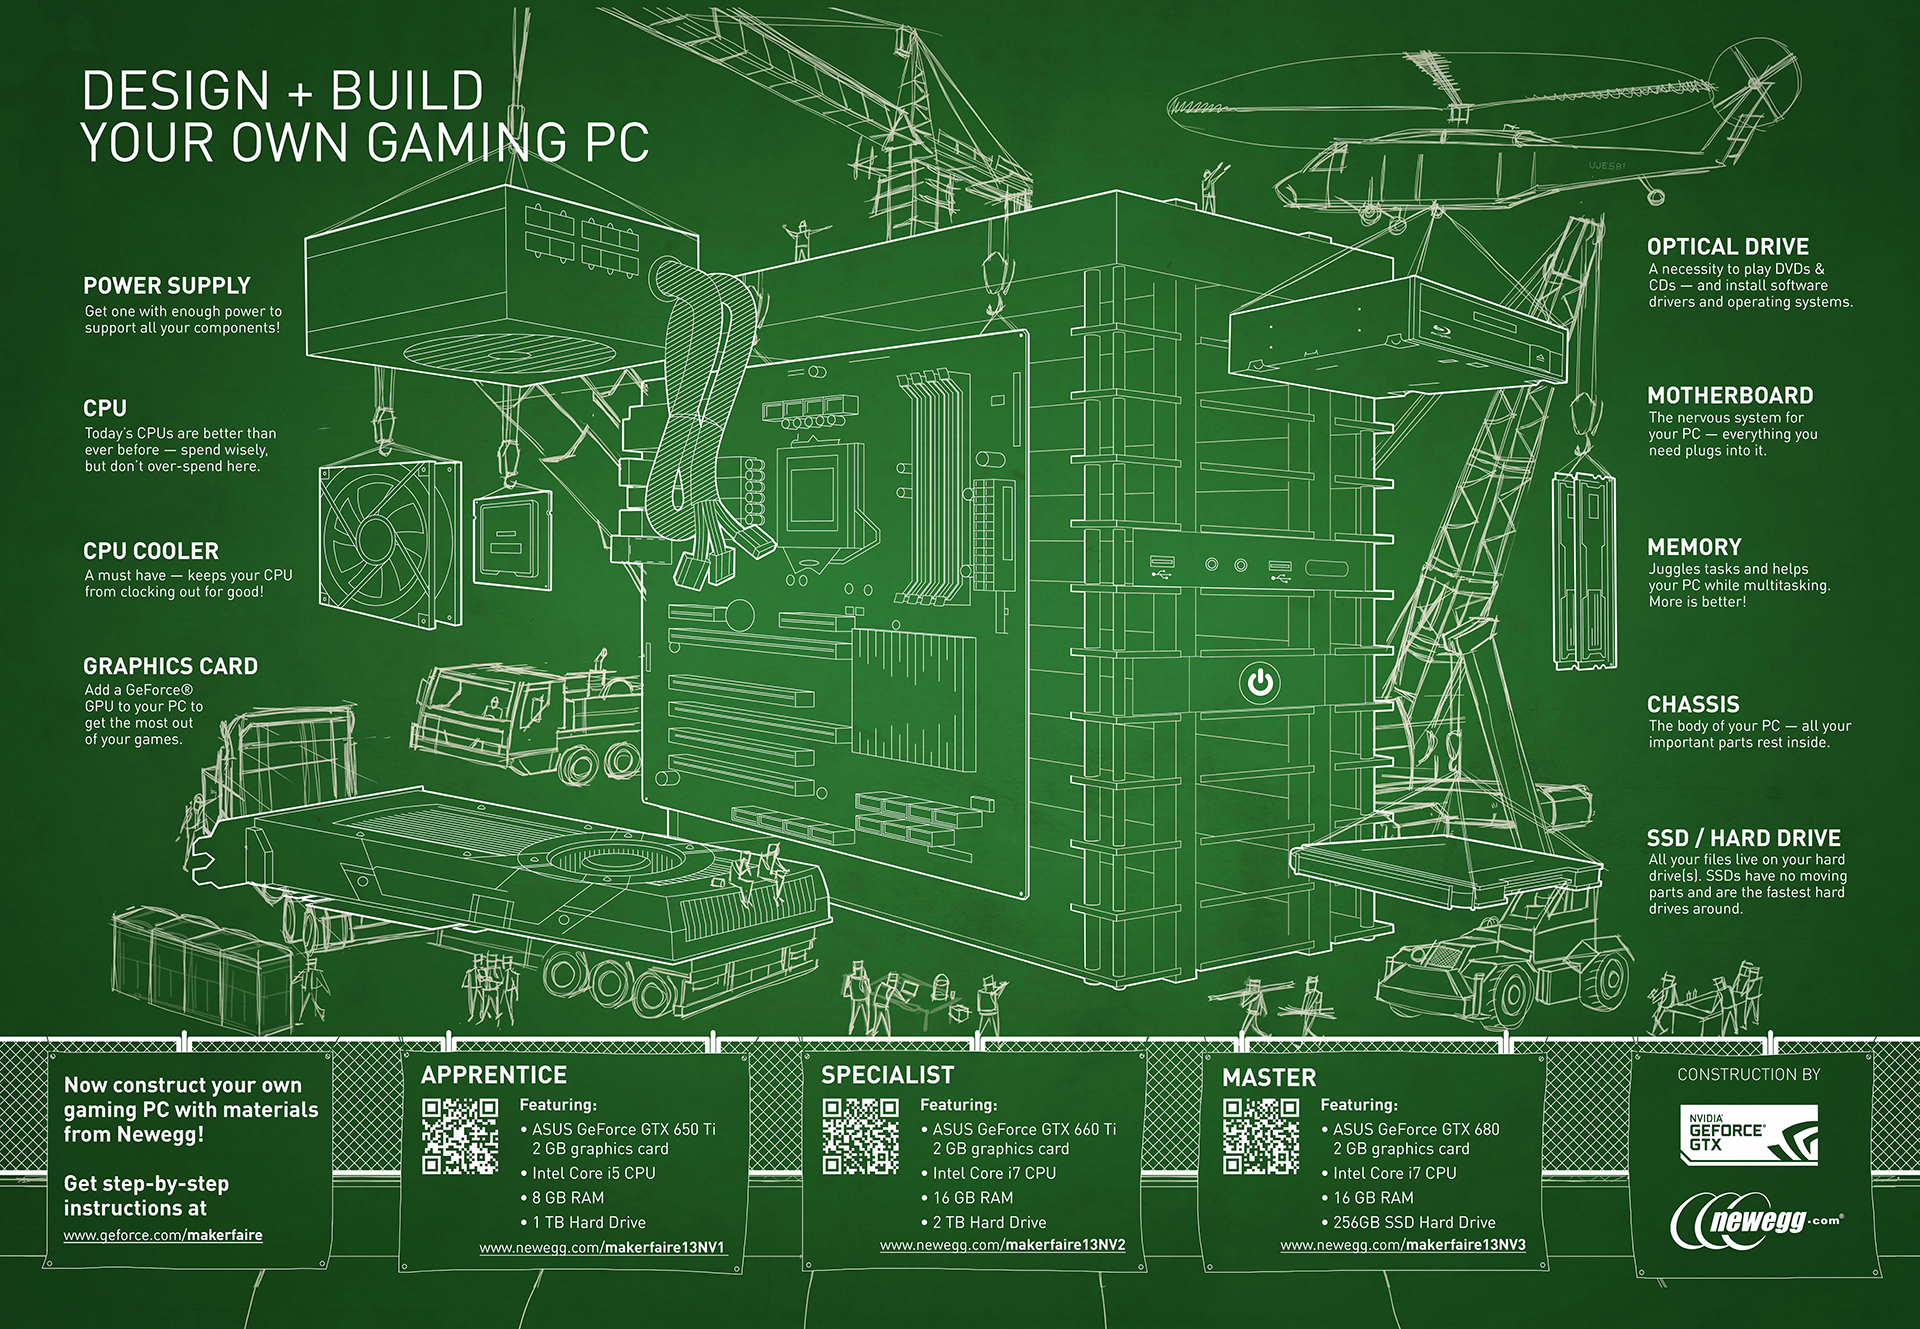 design build your own gaming pc geforce view the full hi res diagram